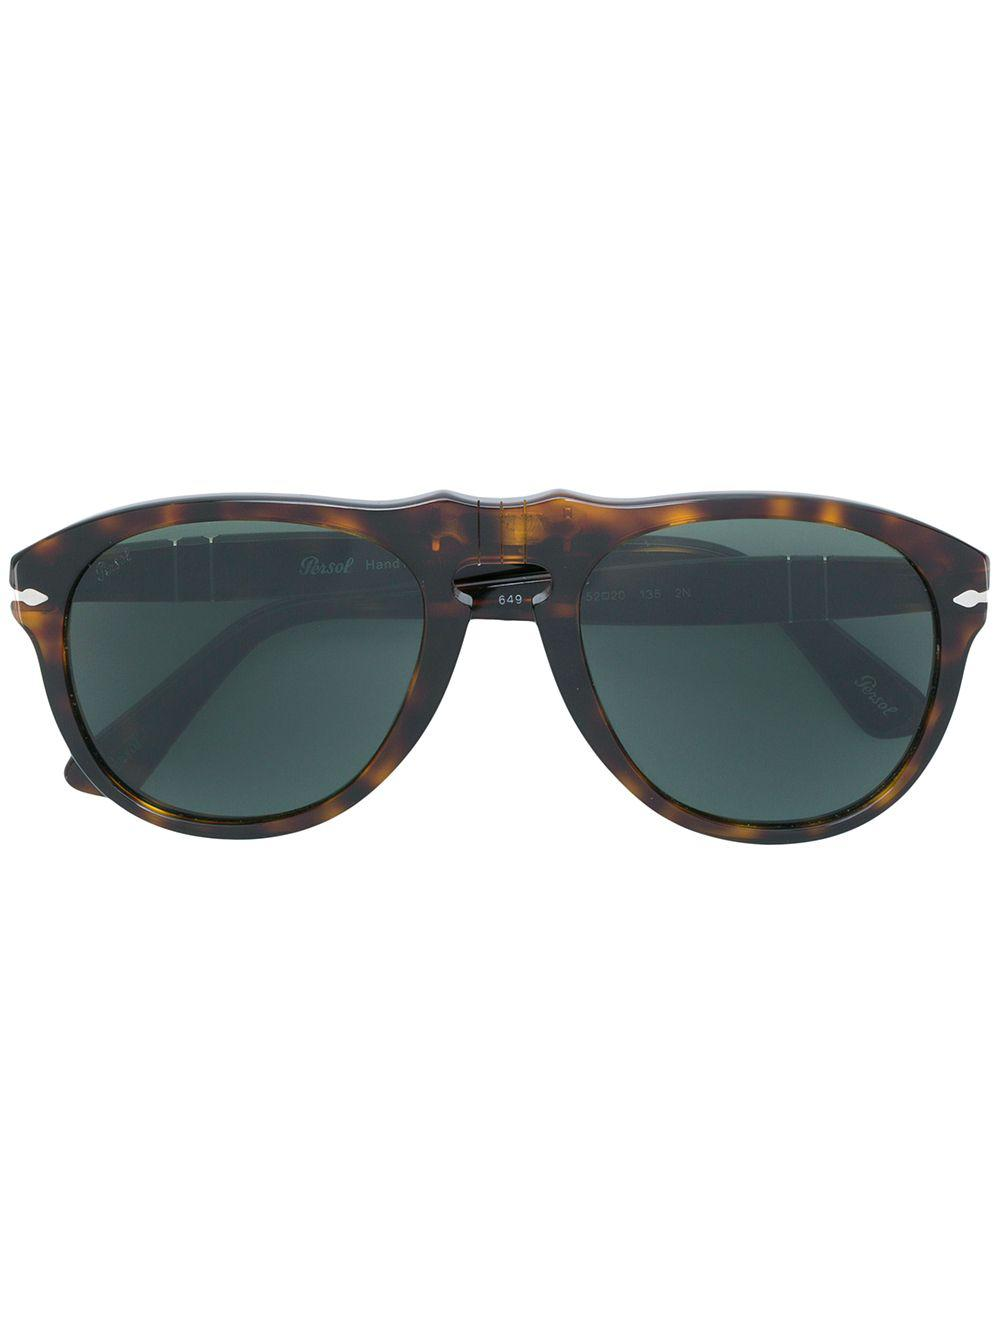 fc99865bed5 Persol Aviator Sunglasses in Brown - Lyst